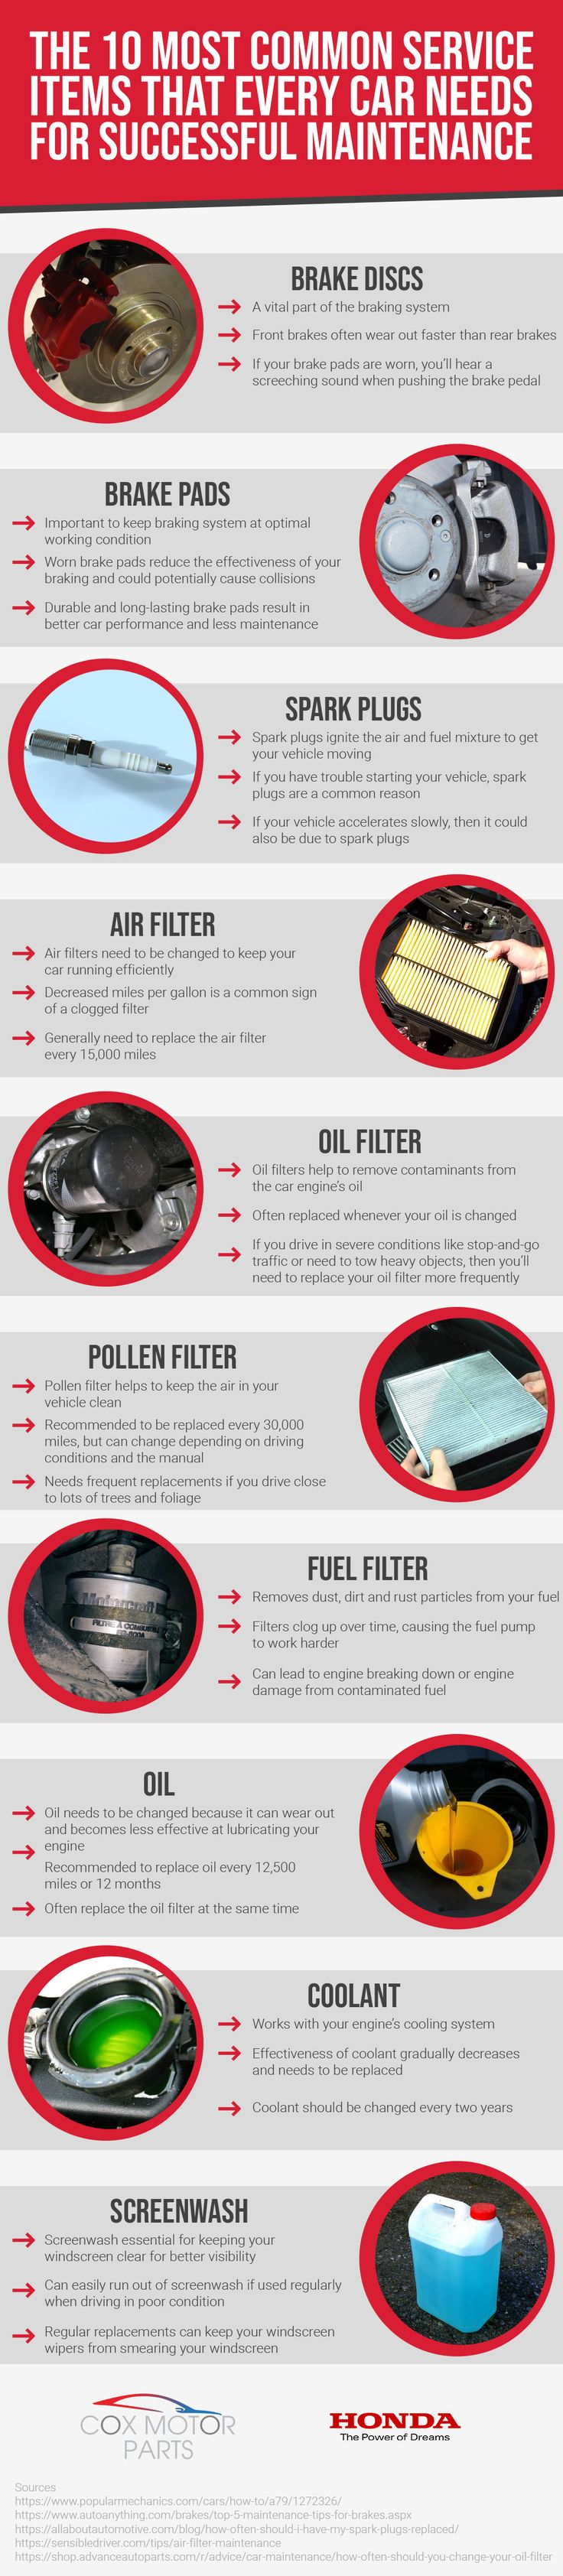 Top 10 Honda Service Items Infographic Infographic